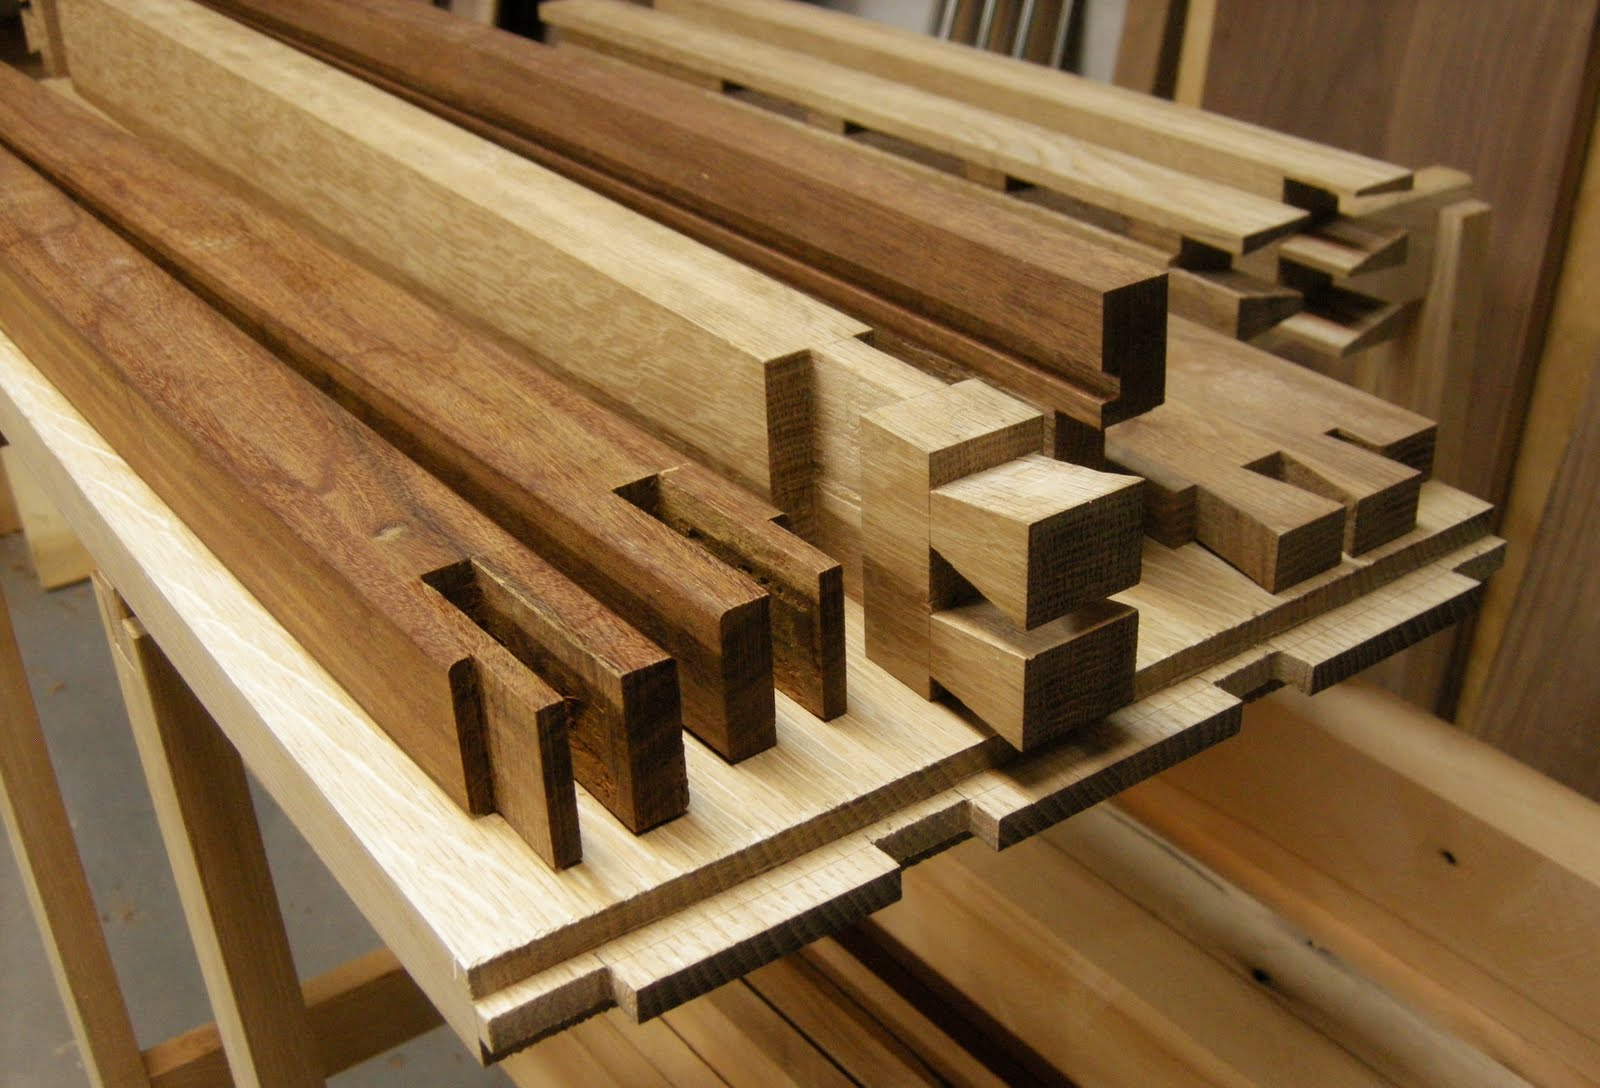 Folding Work Bench Woodworking Plans Norwegian Wood